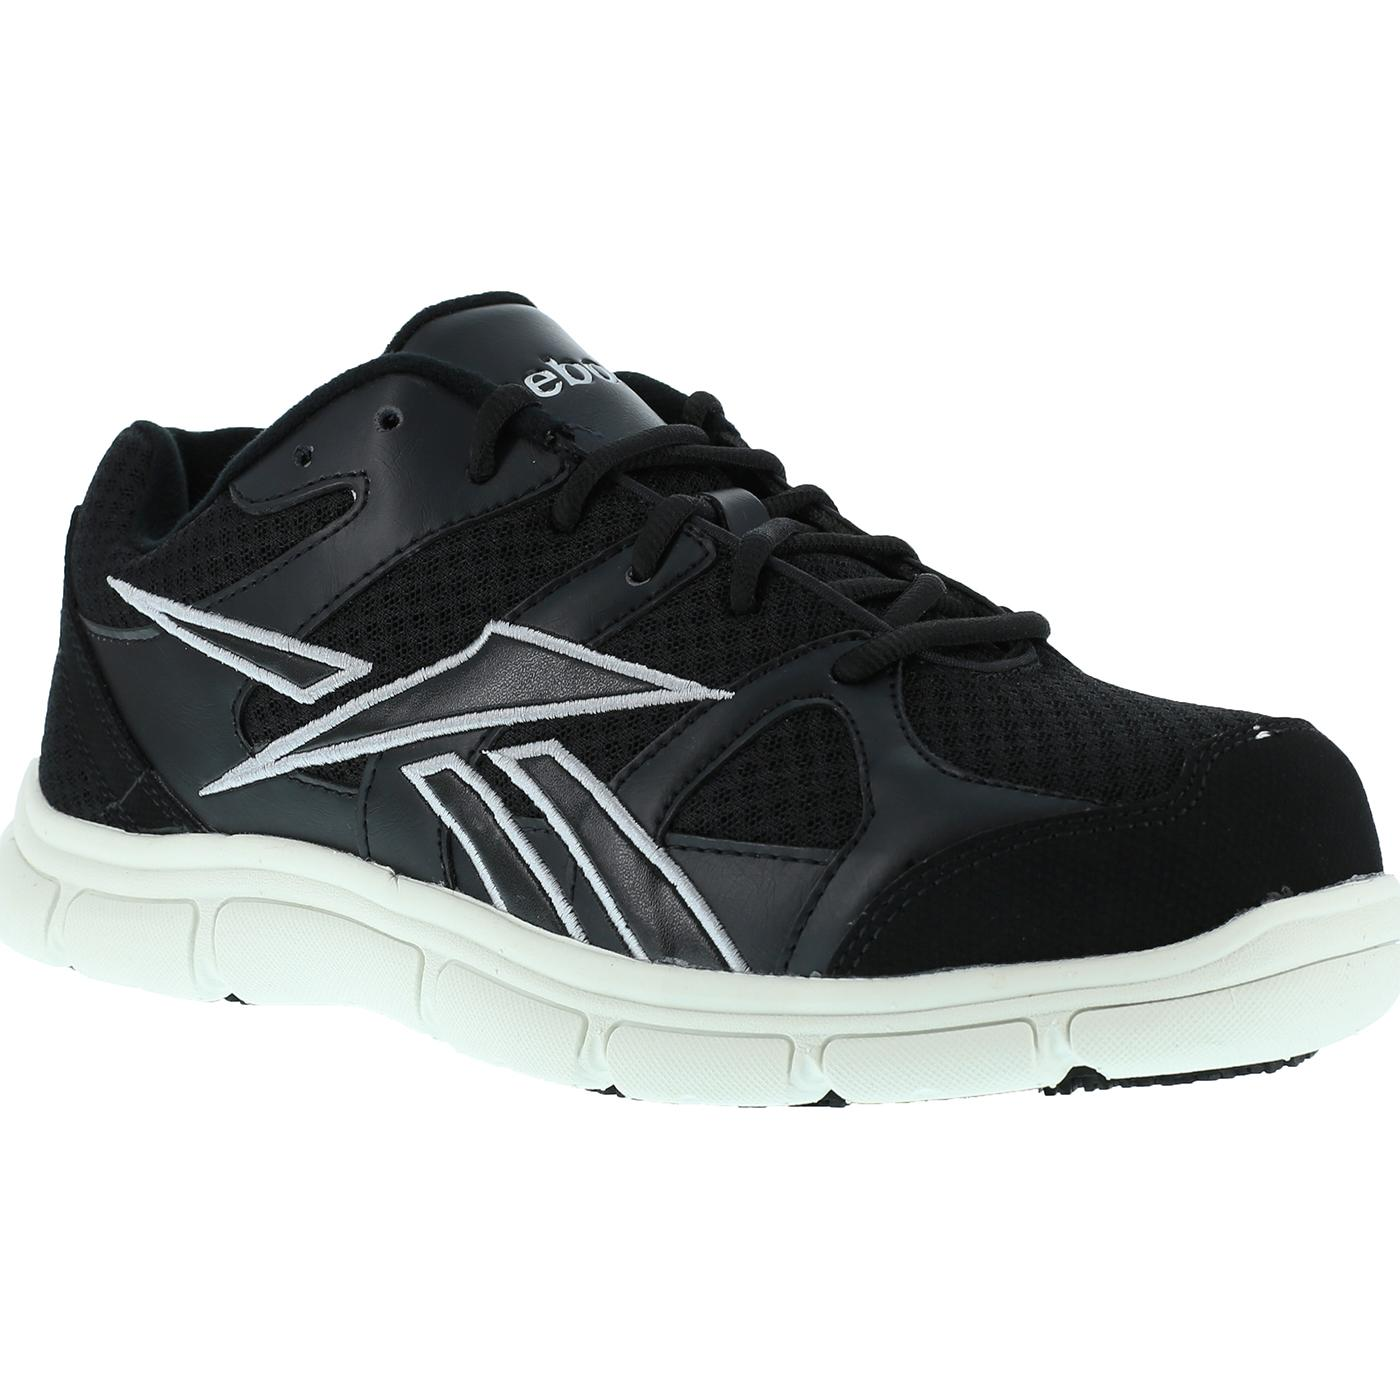 Reebok Non Slip Womens Shoes